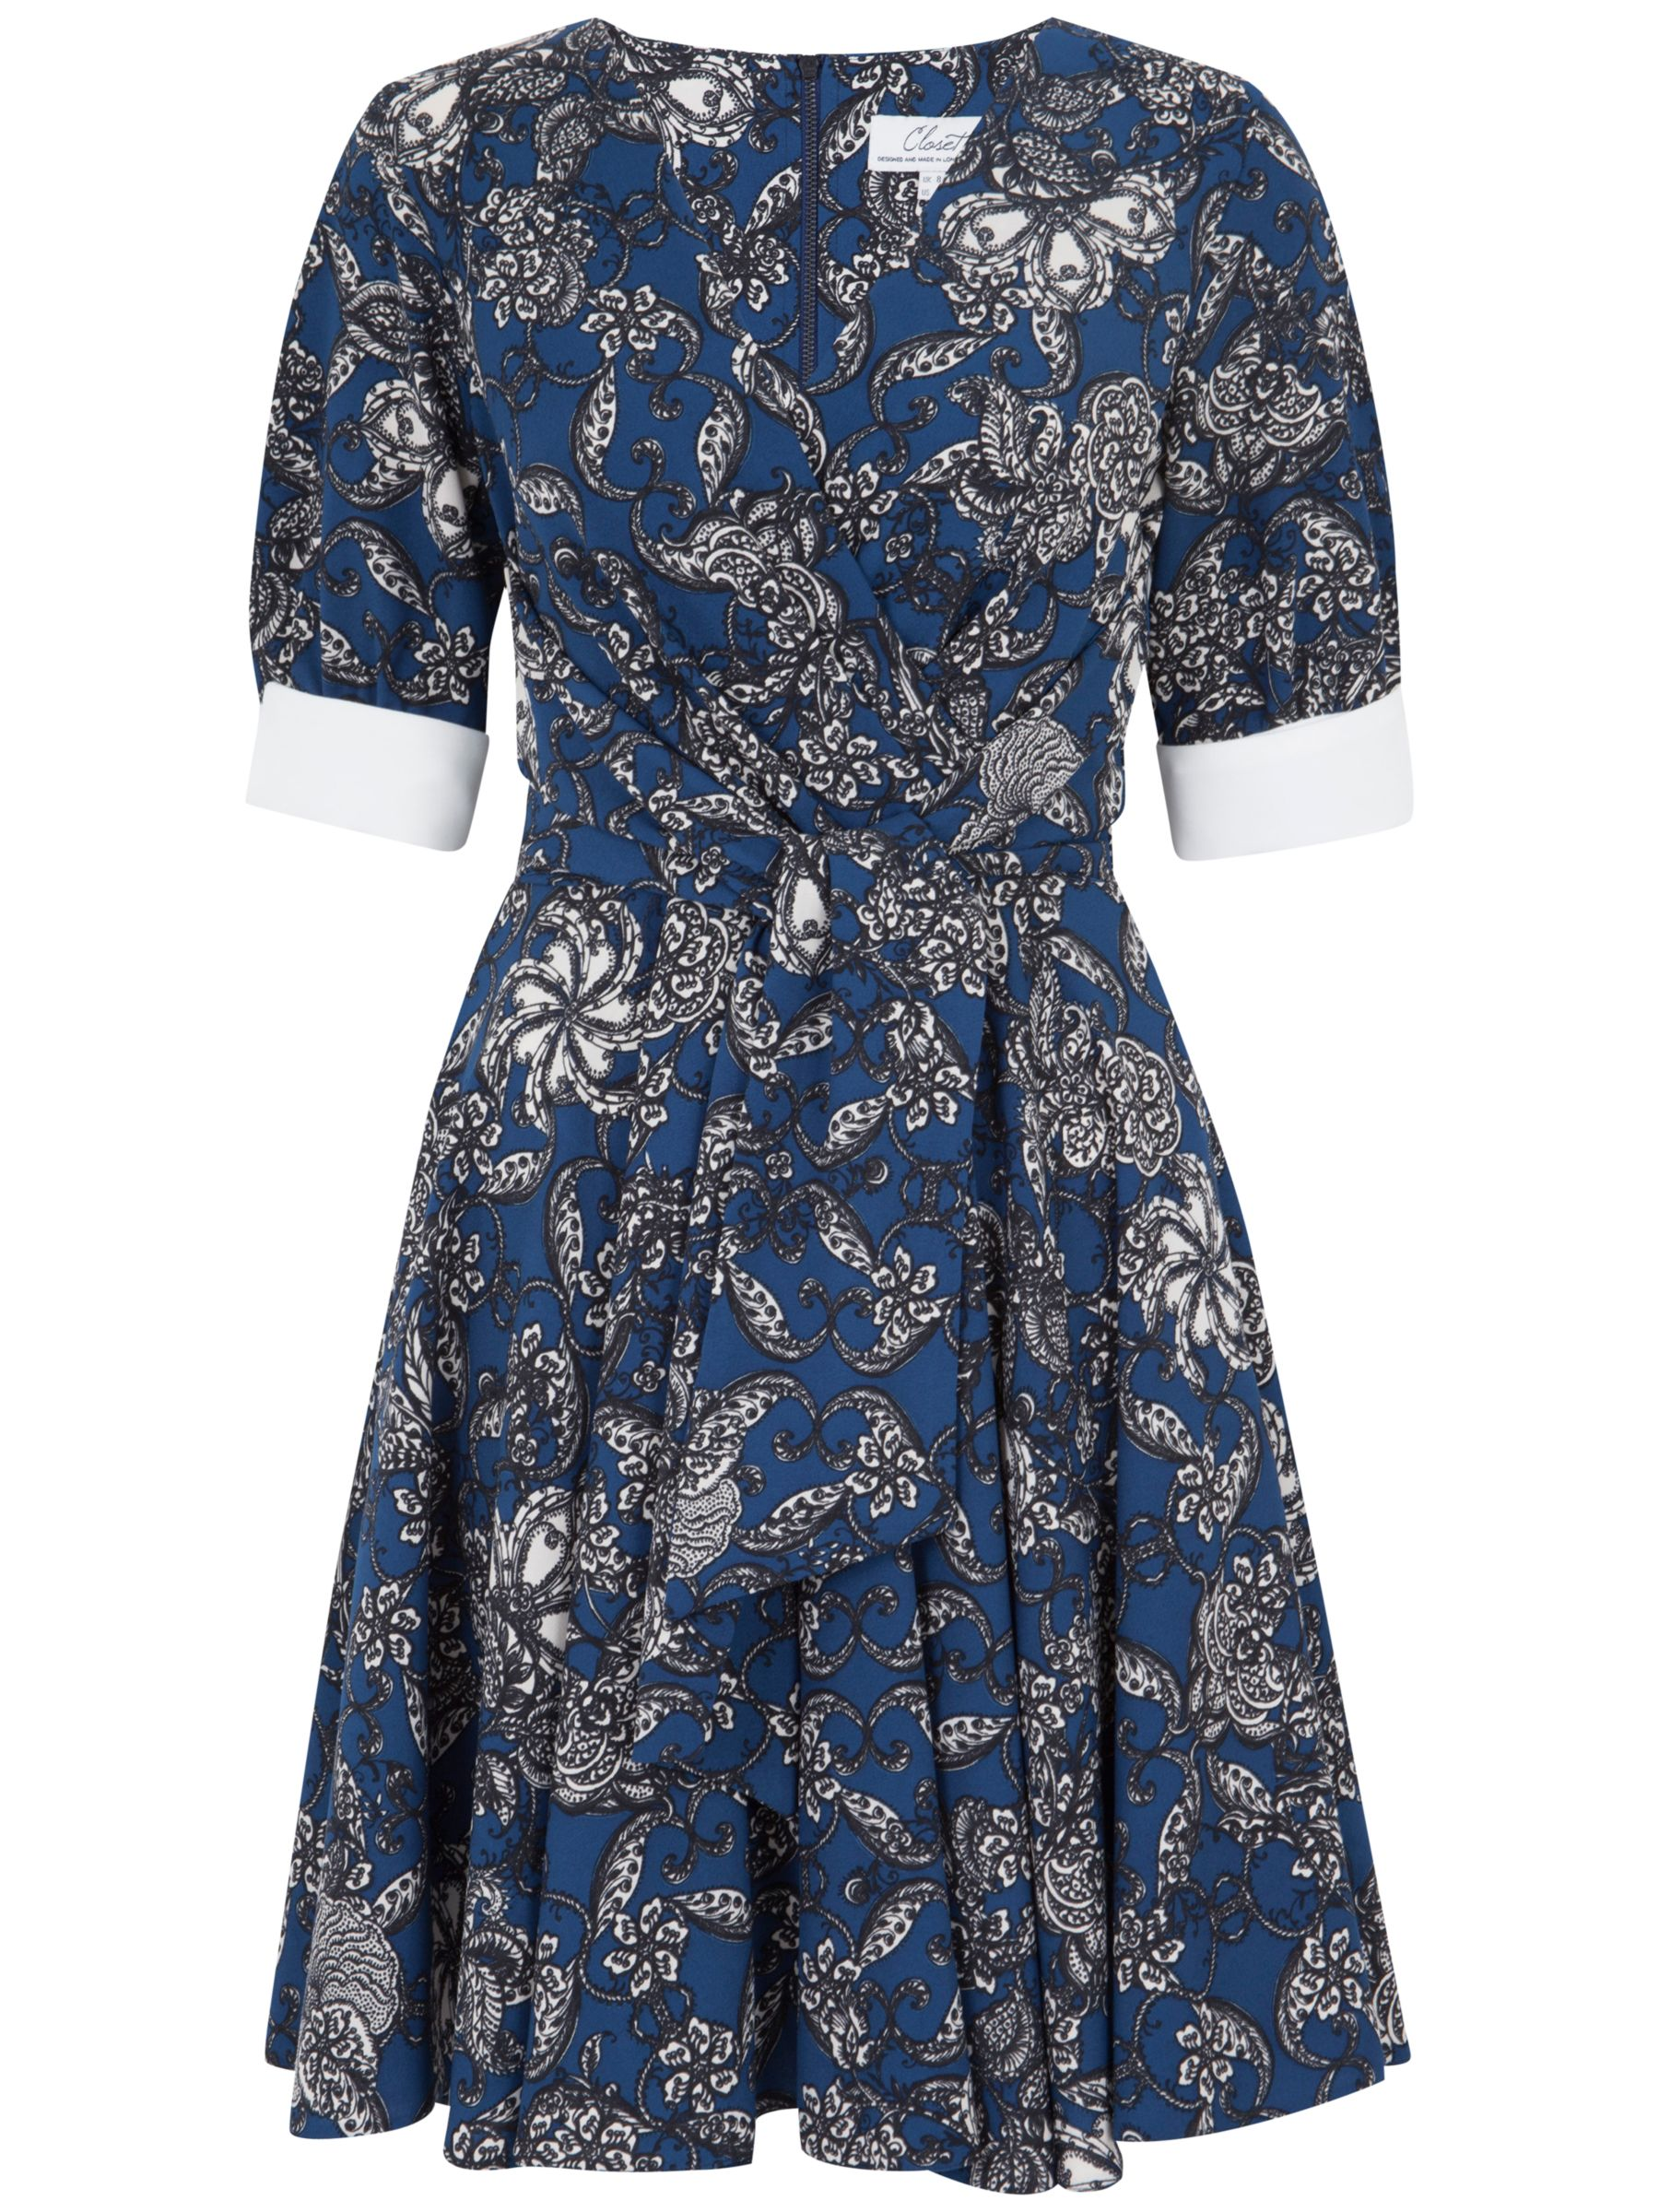 closet contrast cuff floral print dress blue, closet, contrast, cuff, floral, print, dress, blue, 14|12|8|10, clearance, womenswear offers, womens dresses offers, women, inactive womenswear, new reductions, womens dresses, special offers, 1781328